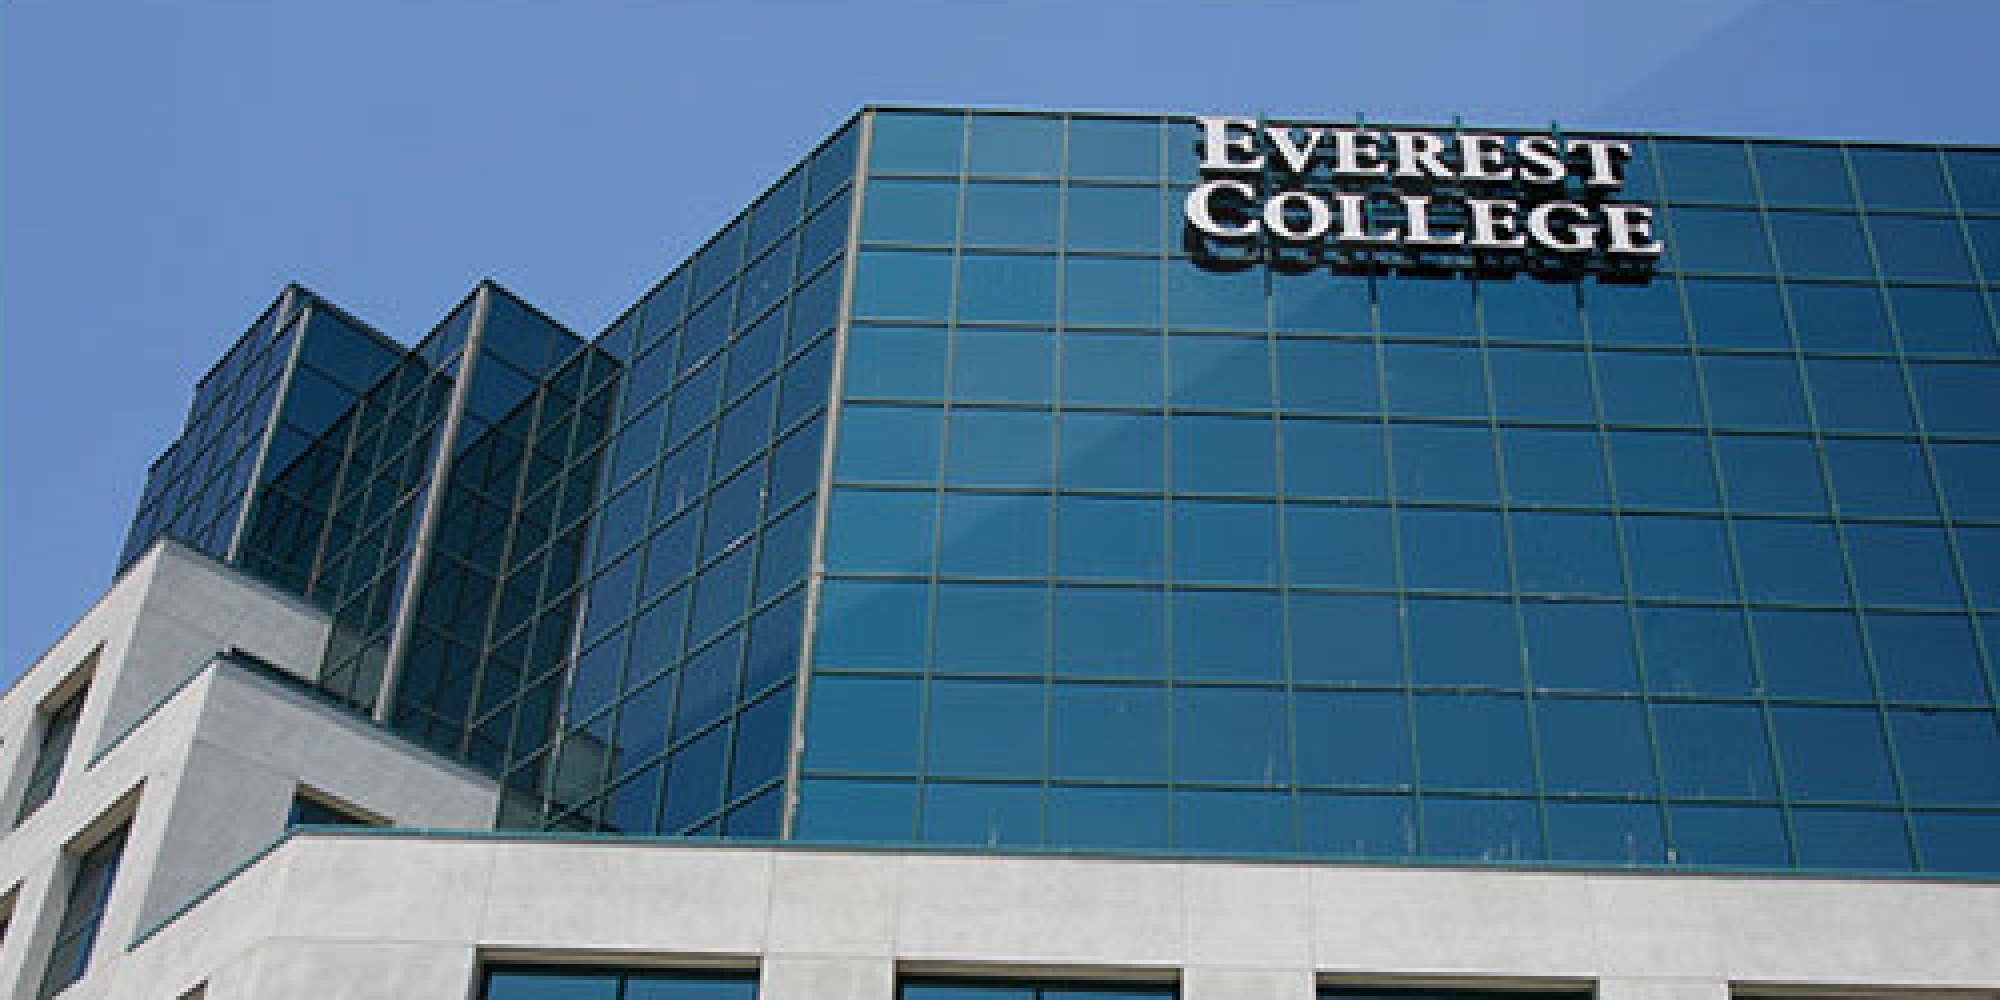 Everest College Shut Down In Ontario, Affecting Students. Human Resource Outsourcing Companies. Lincoln Navigator Photos Tension Vaginal Tape. Business Budget Templates Sentencing For Dui. White Lifted Jeep Wrangler Who Is Harvey Dent. Top Ranked Online Colleges And Universities. Maynard School District Pay Bills Online Chase. Protect America Reviews Agile Testing Process. Integrated Marketing Platform